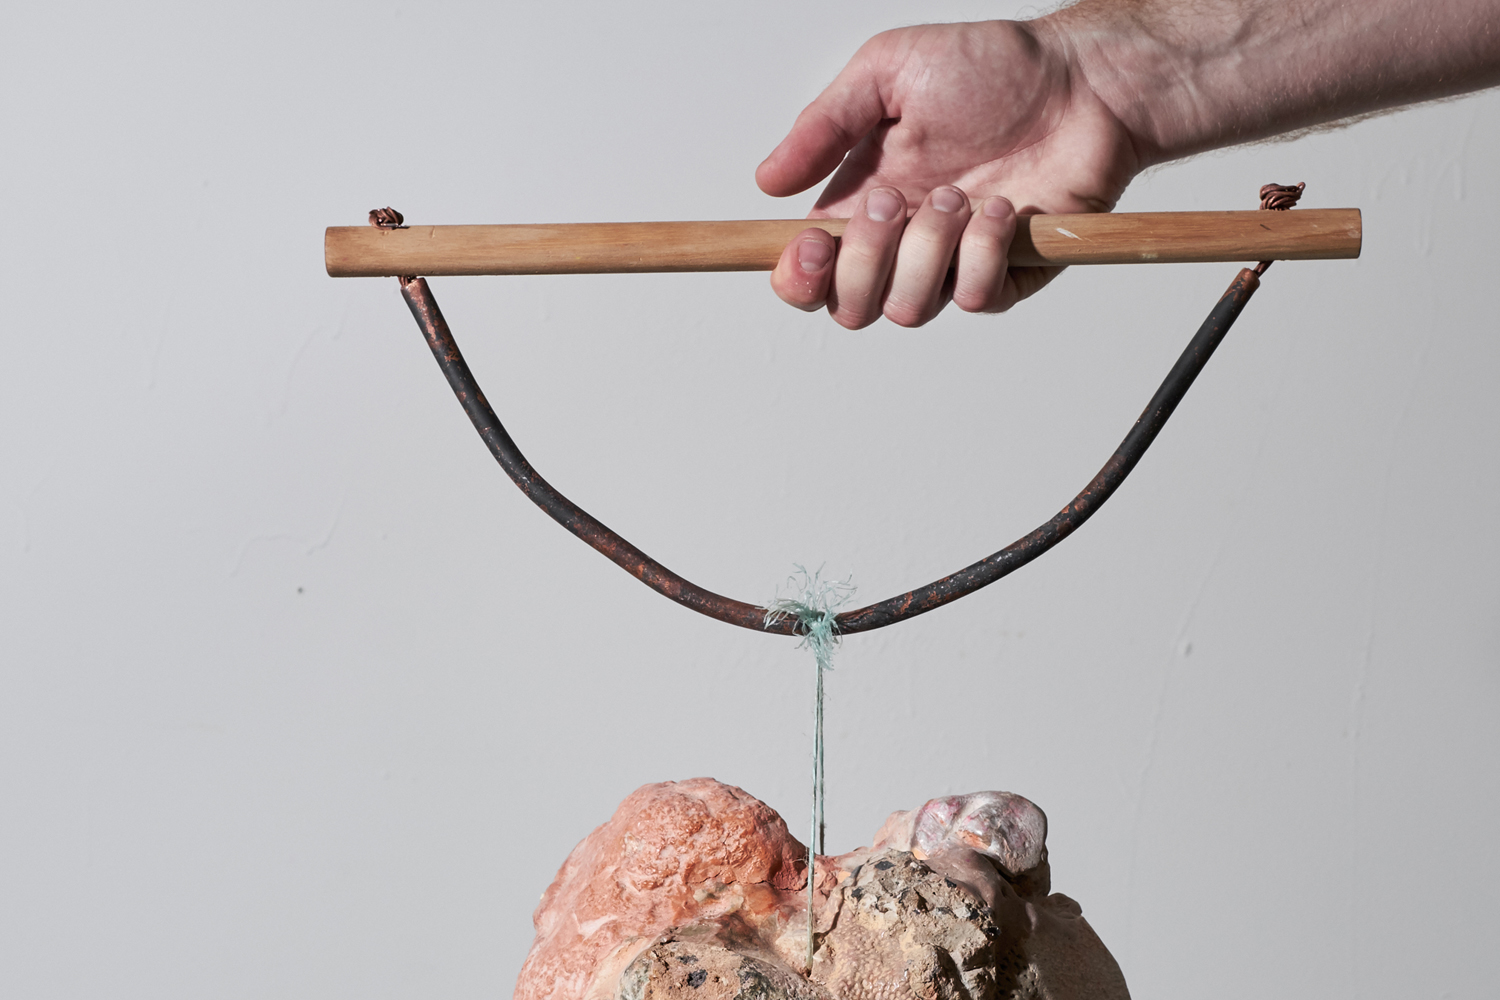 Ro Noonan,  Lift, but don't,  2016, wood, copper, plaster, rocks, Apoxie Sculpt, putty, acrylic, twine, clay, Dimensions Variable. Courtesy the artist. Image Credit: Tasha Tylee.